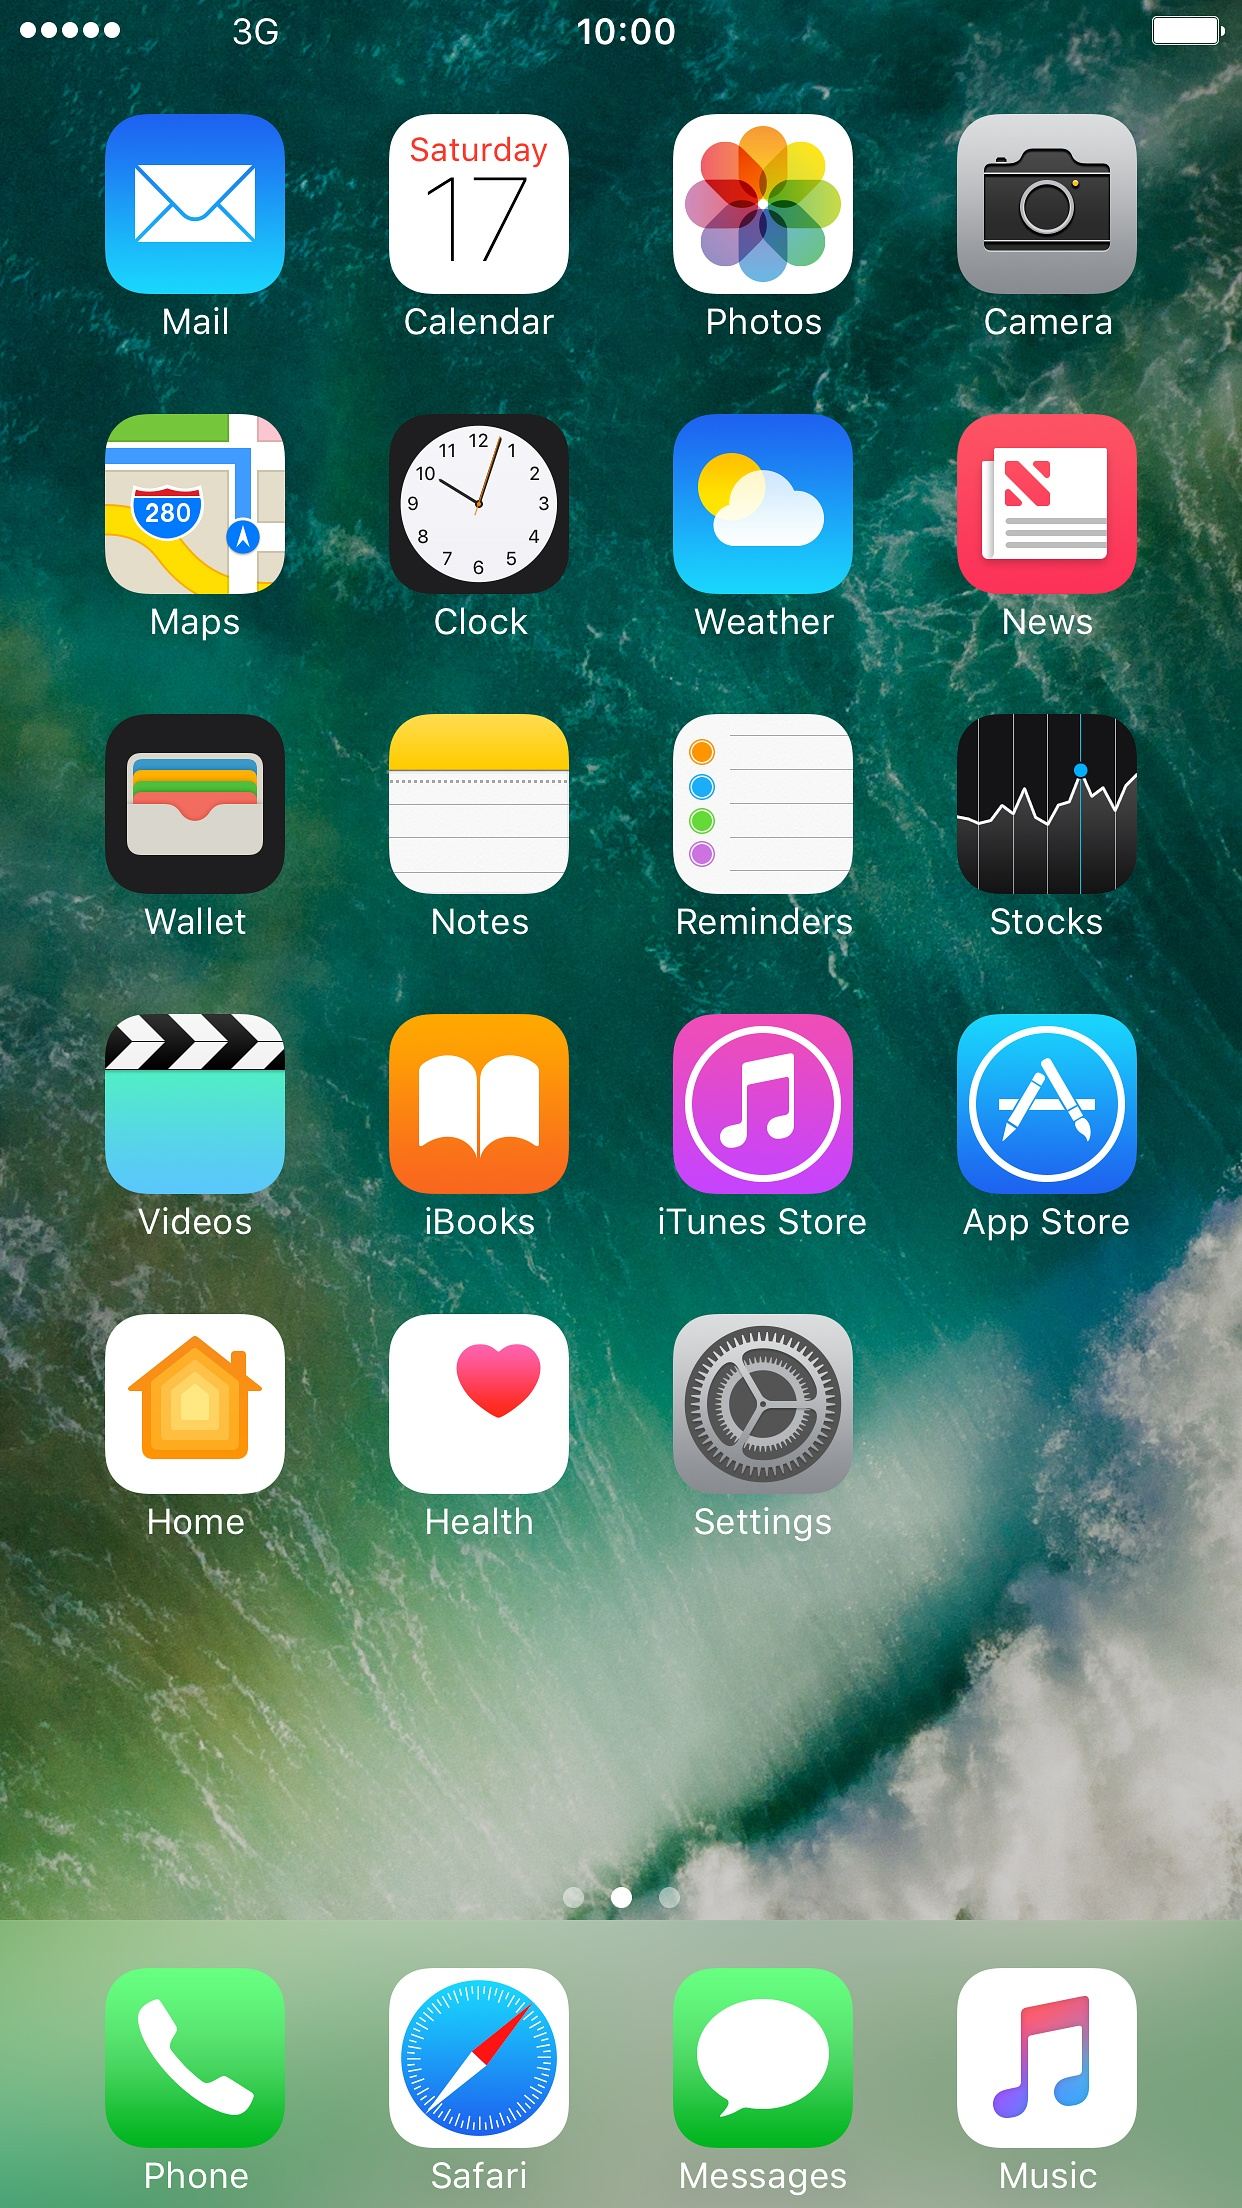 List of screen icons apple iphone 7 plus ios 100 telstra 5 of 11 steps the network mode icon shows the network mode currently used by your phone buycottarizona